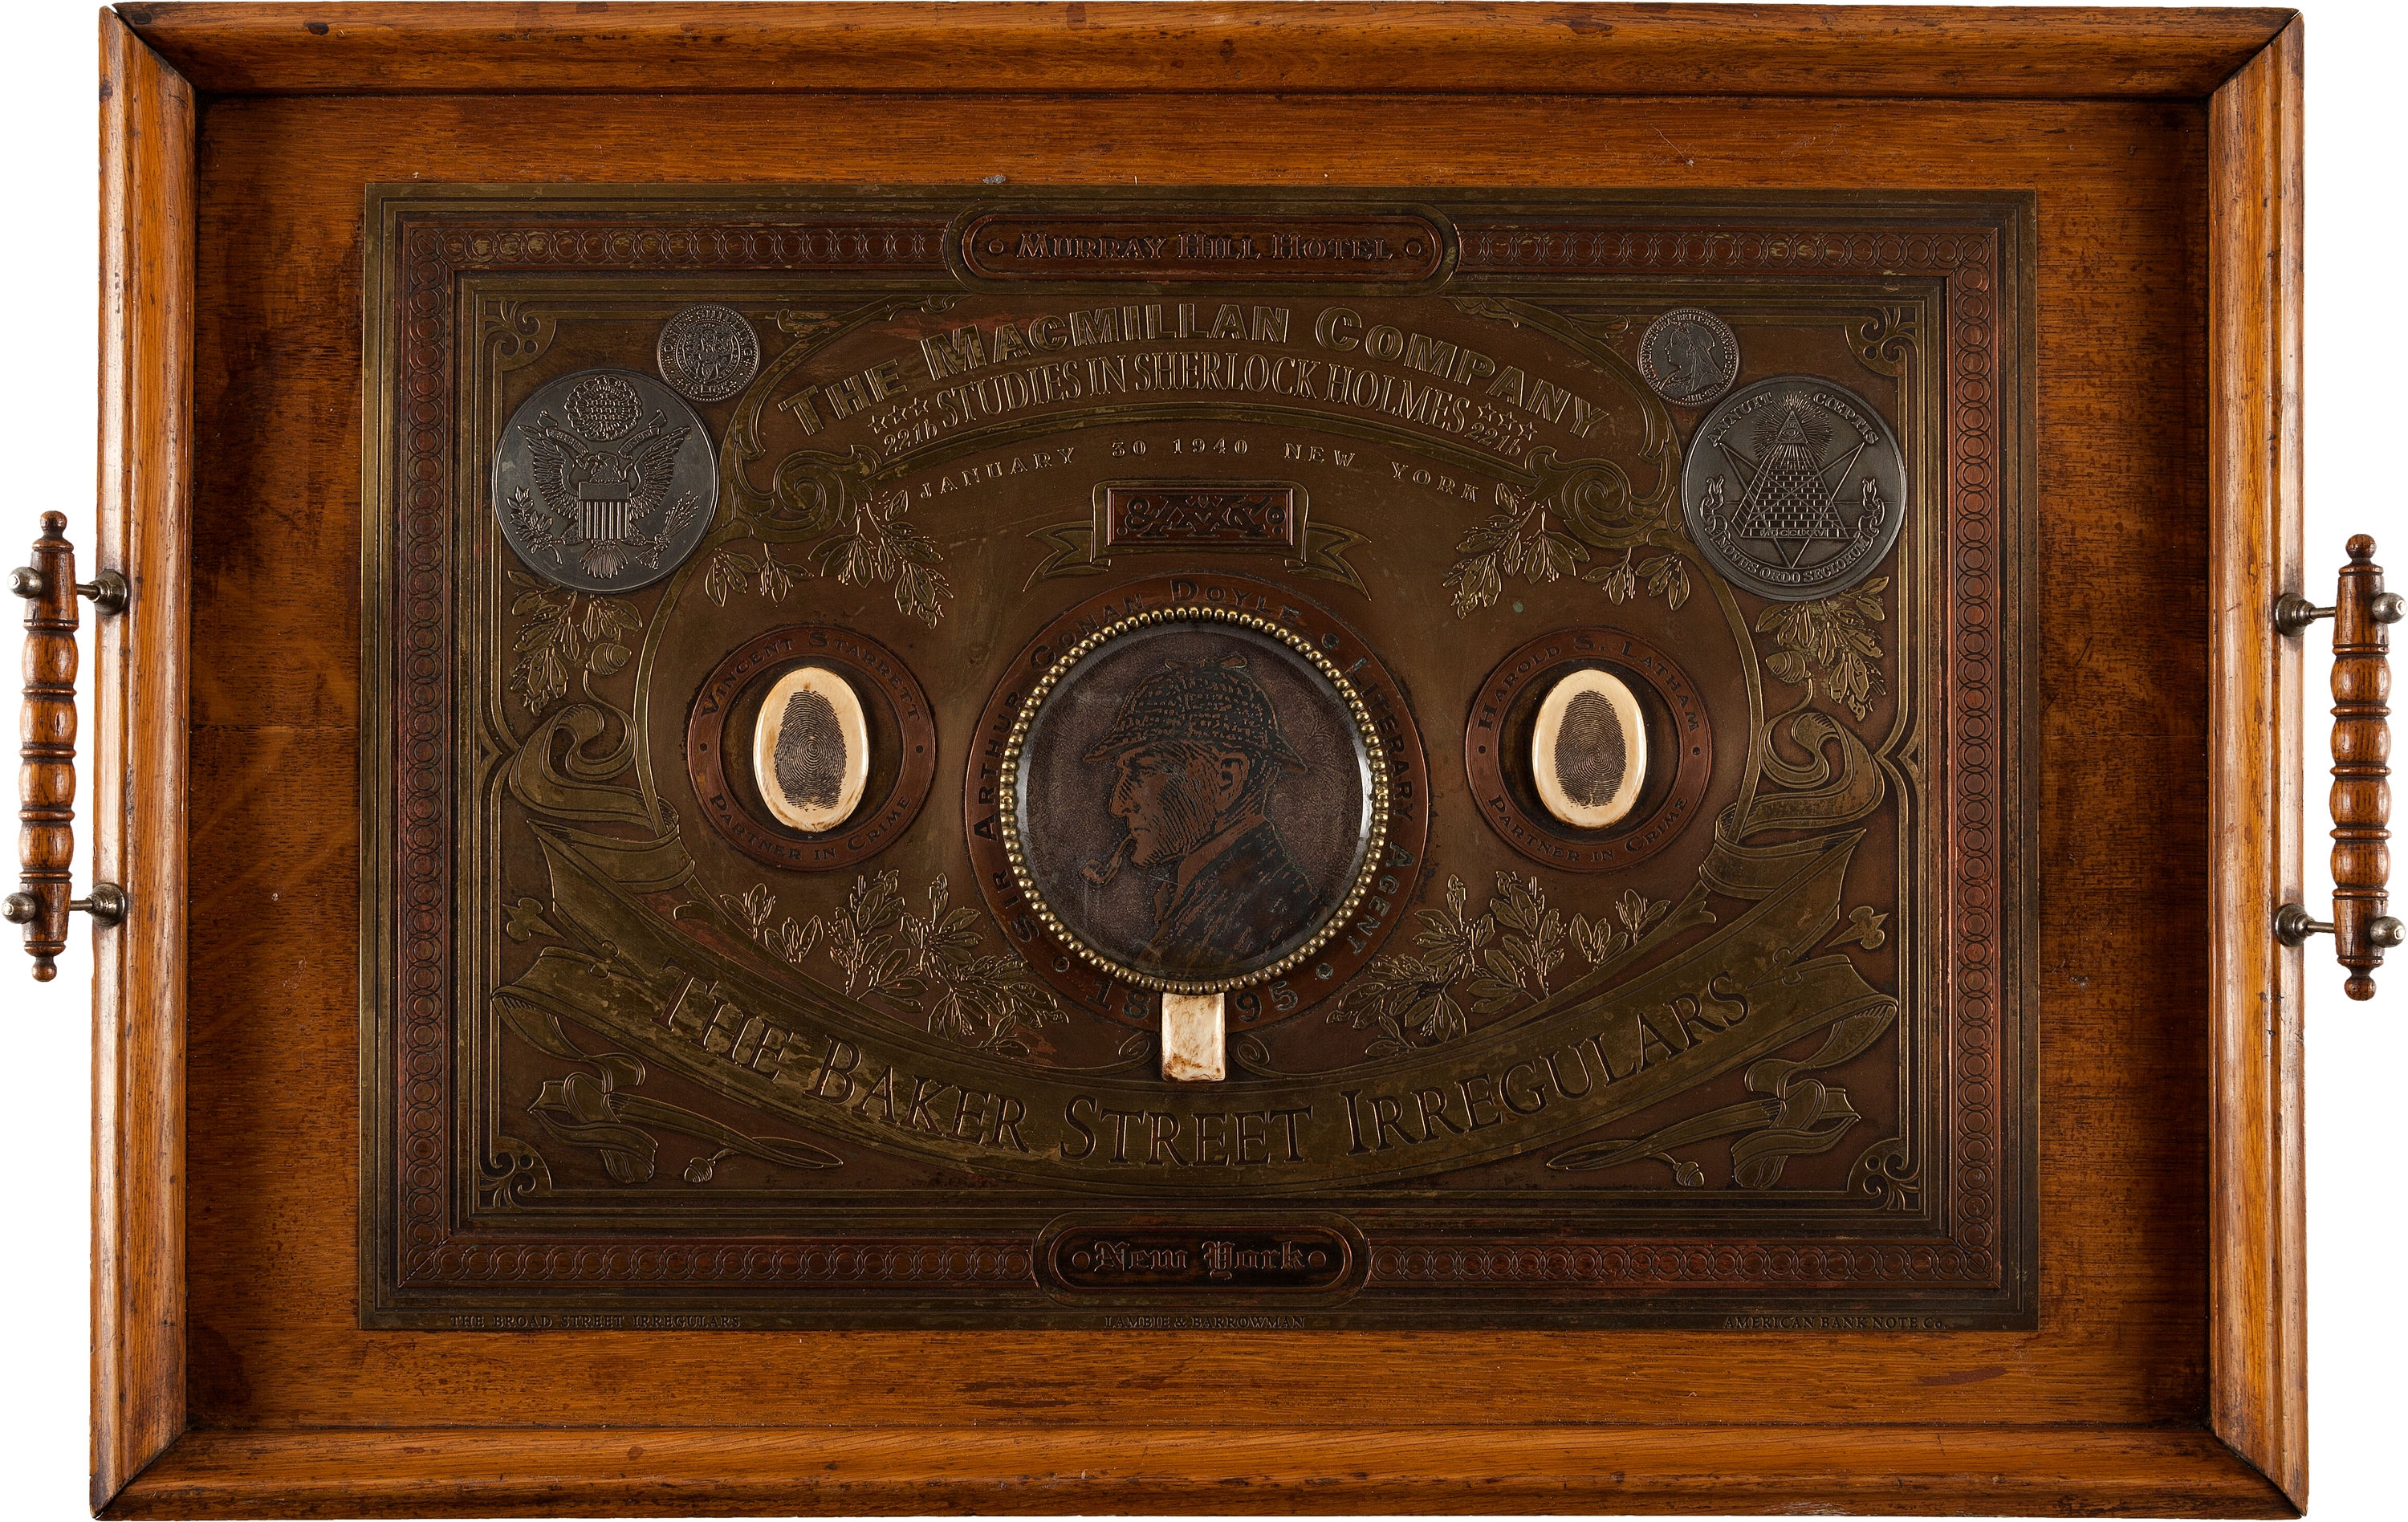 Heritage Auctions' October 8, 2014 Auction Lot Descriptions of Two Irregular Plates